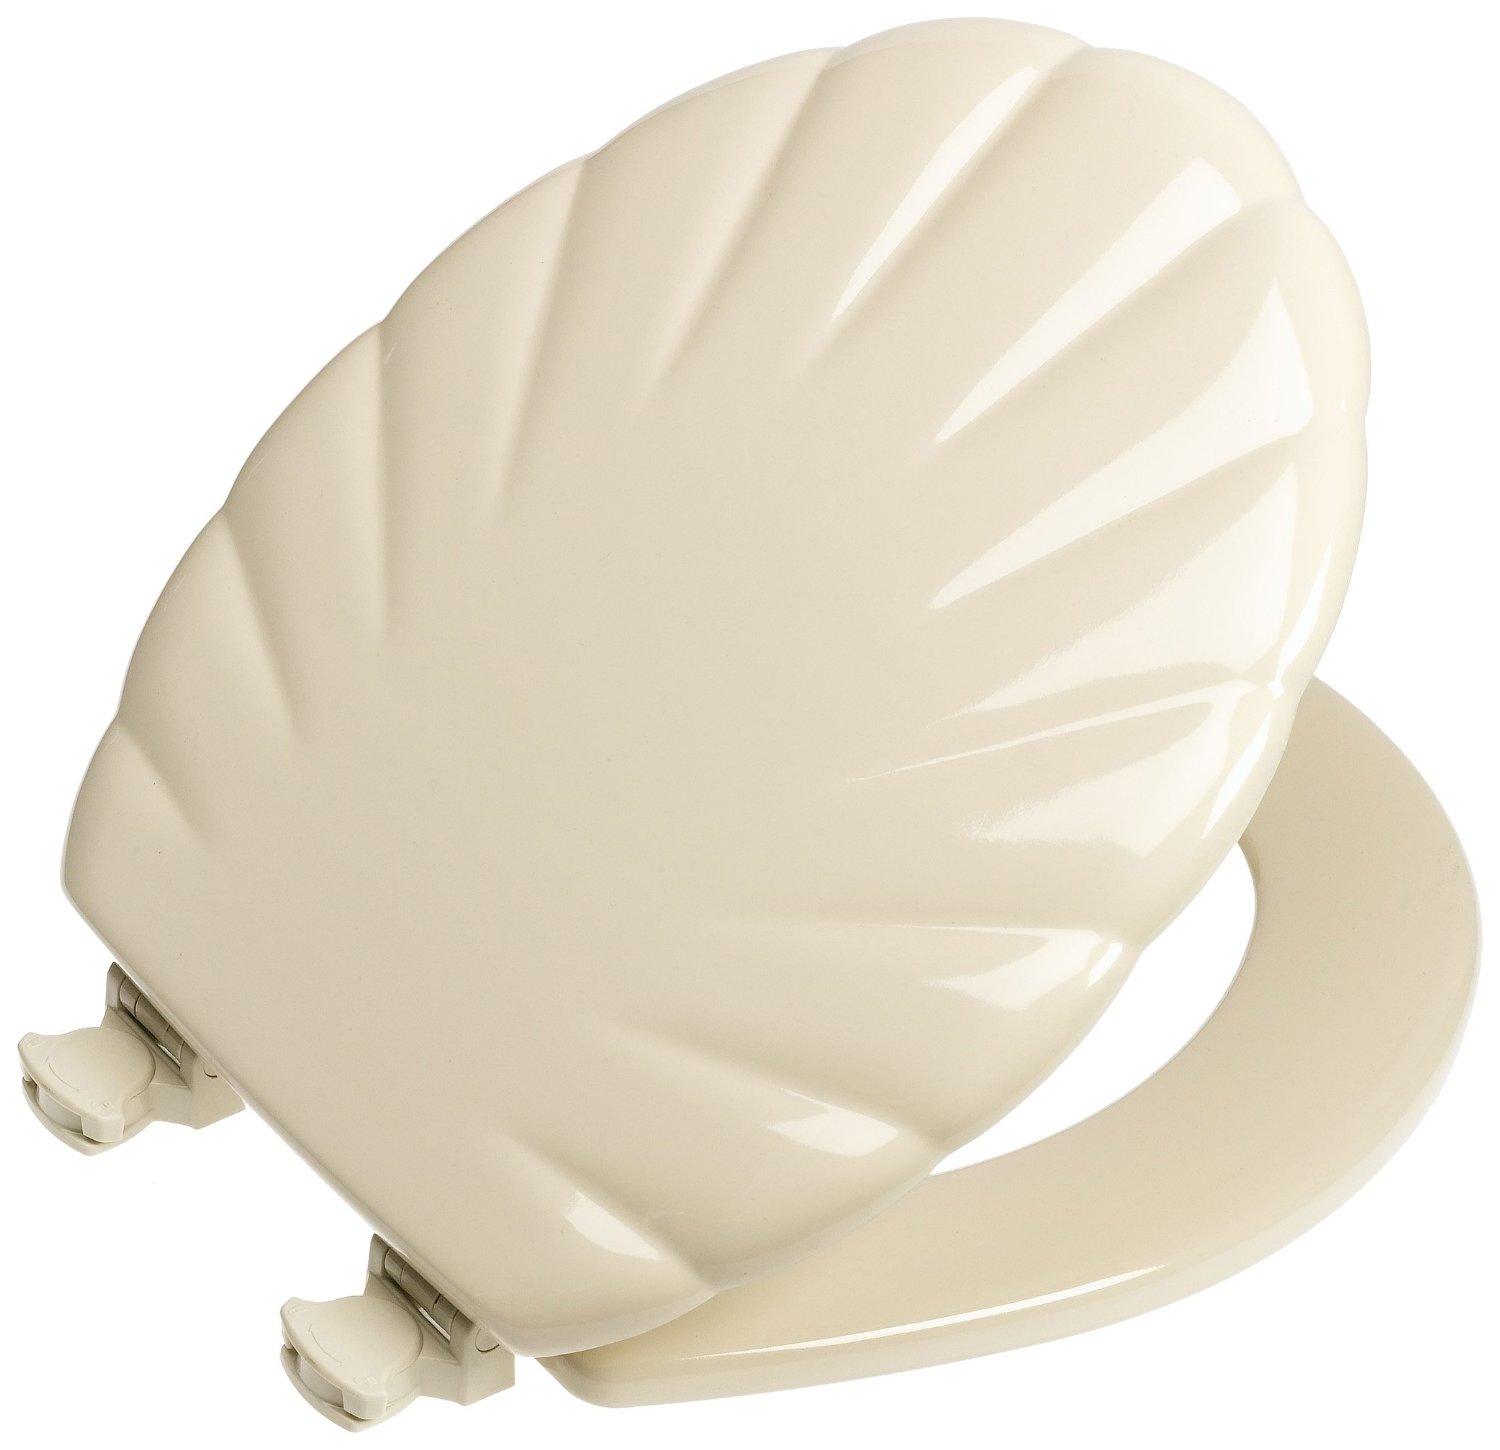 Elongated Toilet Seat Covers Designed For Your Comfort Seashell